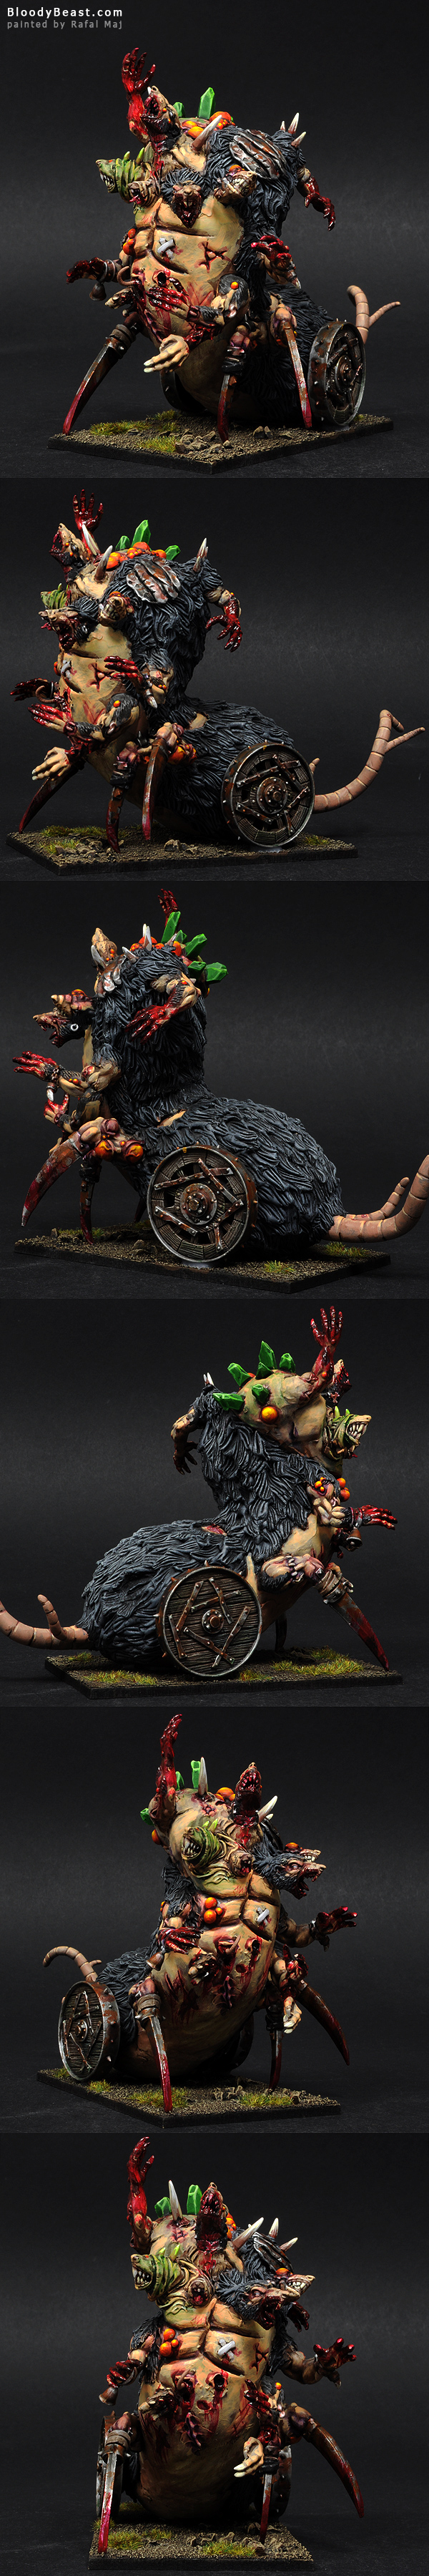 Skaven Hell Pit Abomination painted by Rafal Maj (BloodyBeast.com)